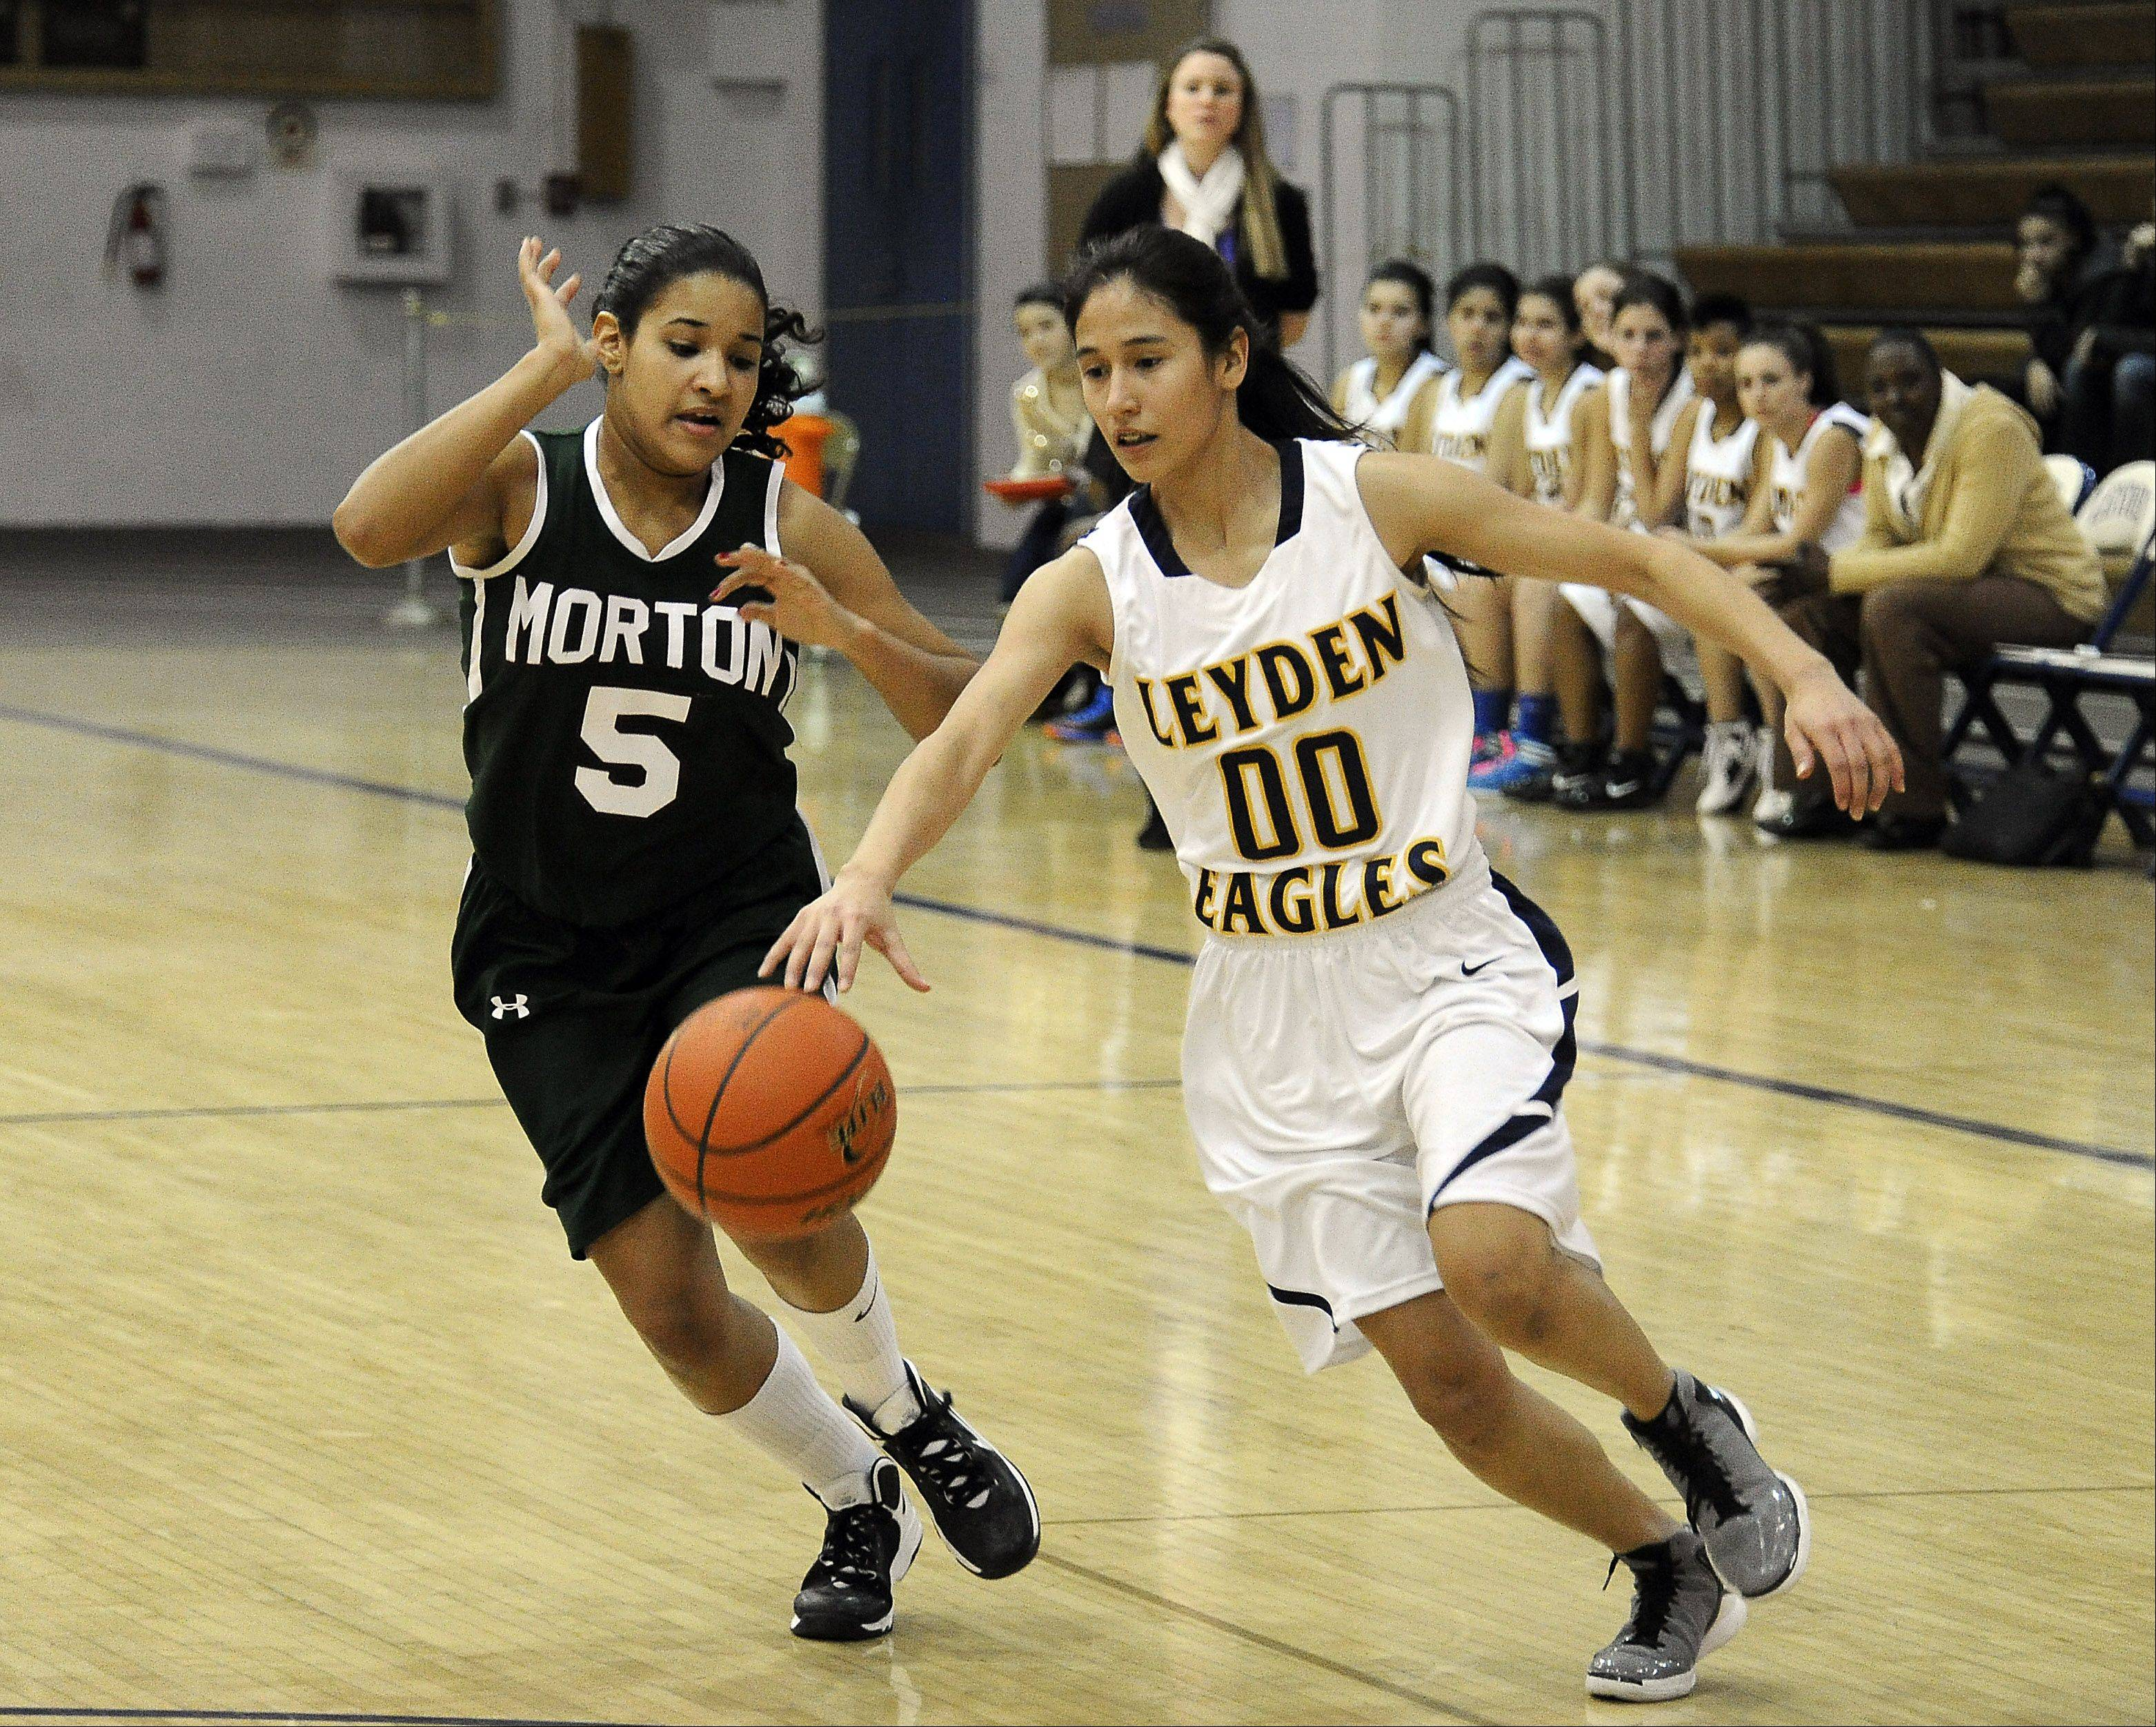 Images: Leyden vs Morton, girls basketball